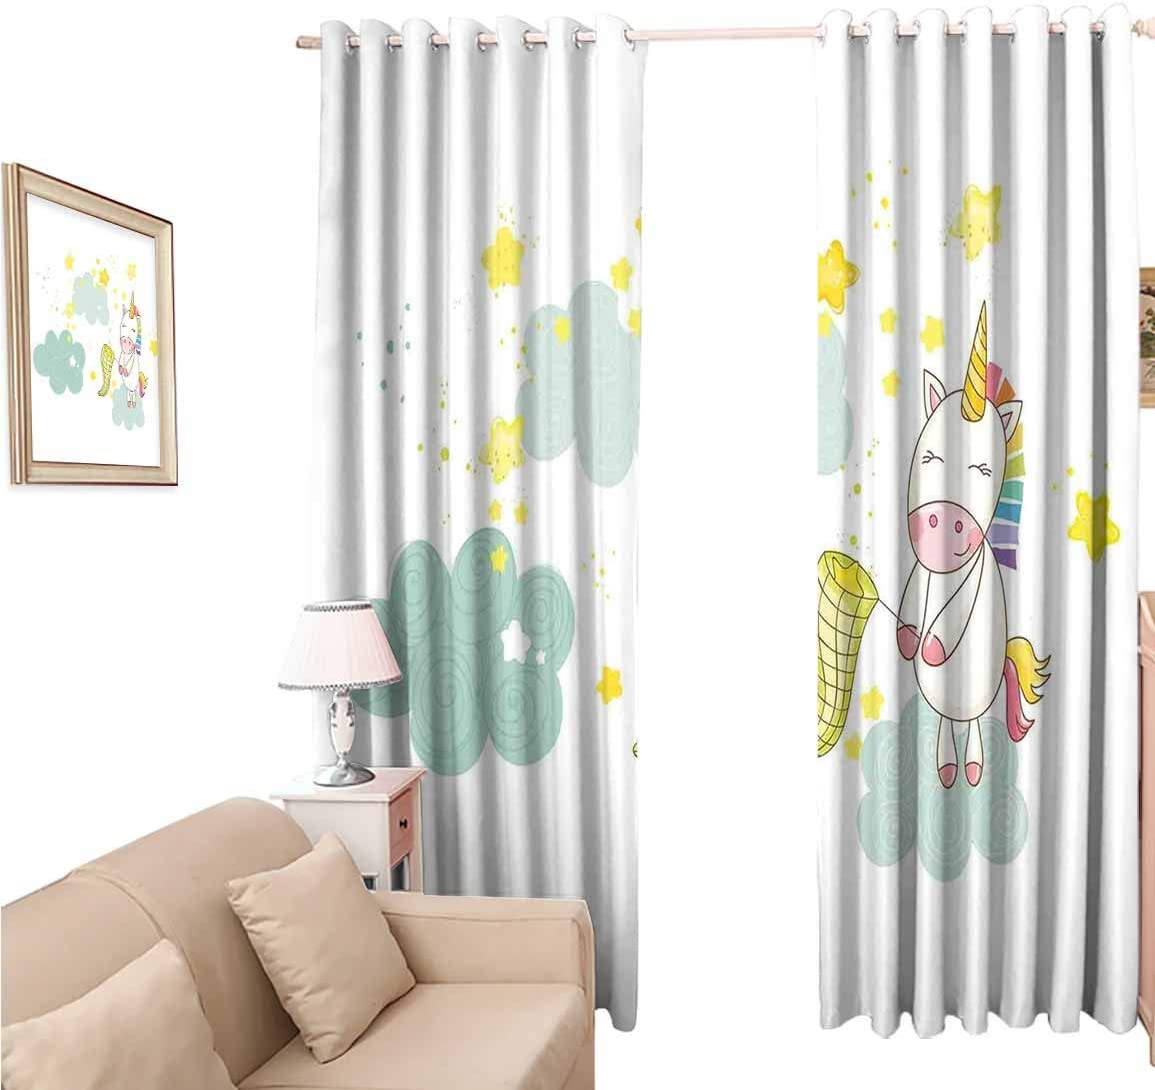 oobon Blackout Wide Curtains 108 Inches, Unicorn Baby Mystic Unicorn Girl Sitting on Fluffy Clouds and Hunting Nursery, for Bedroom and Living Room, 108x108 inch